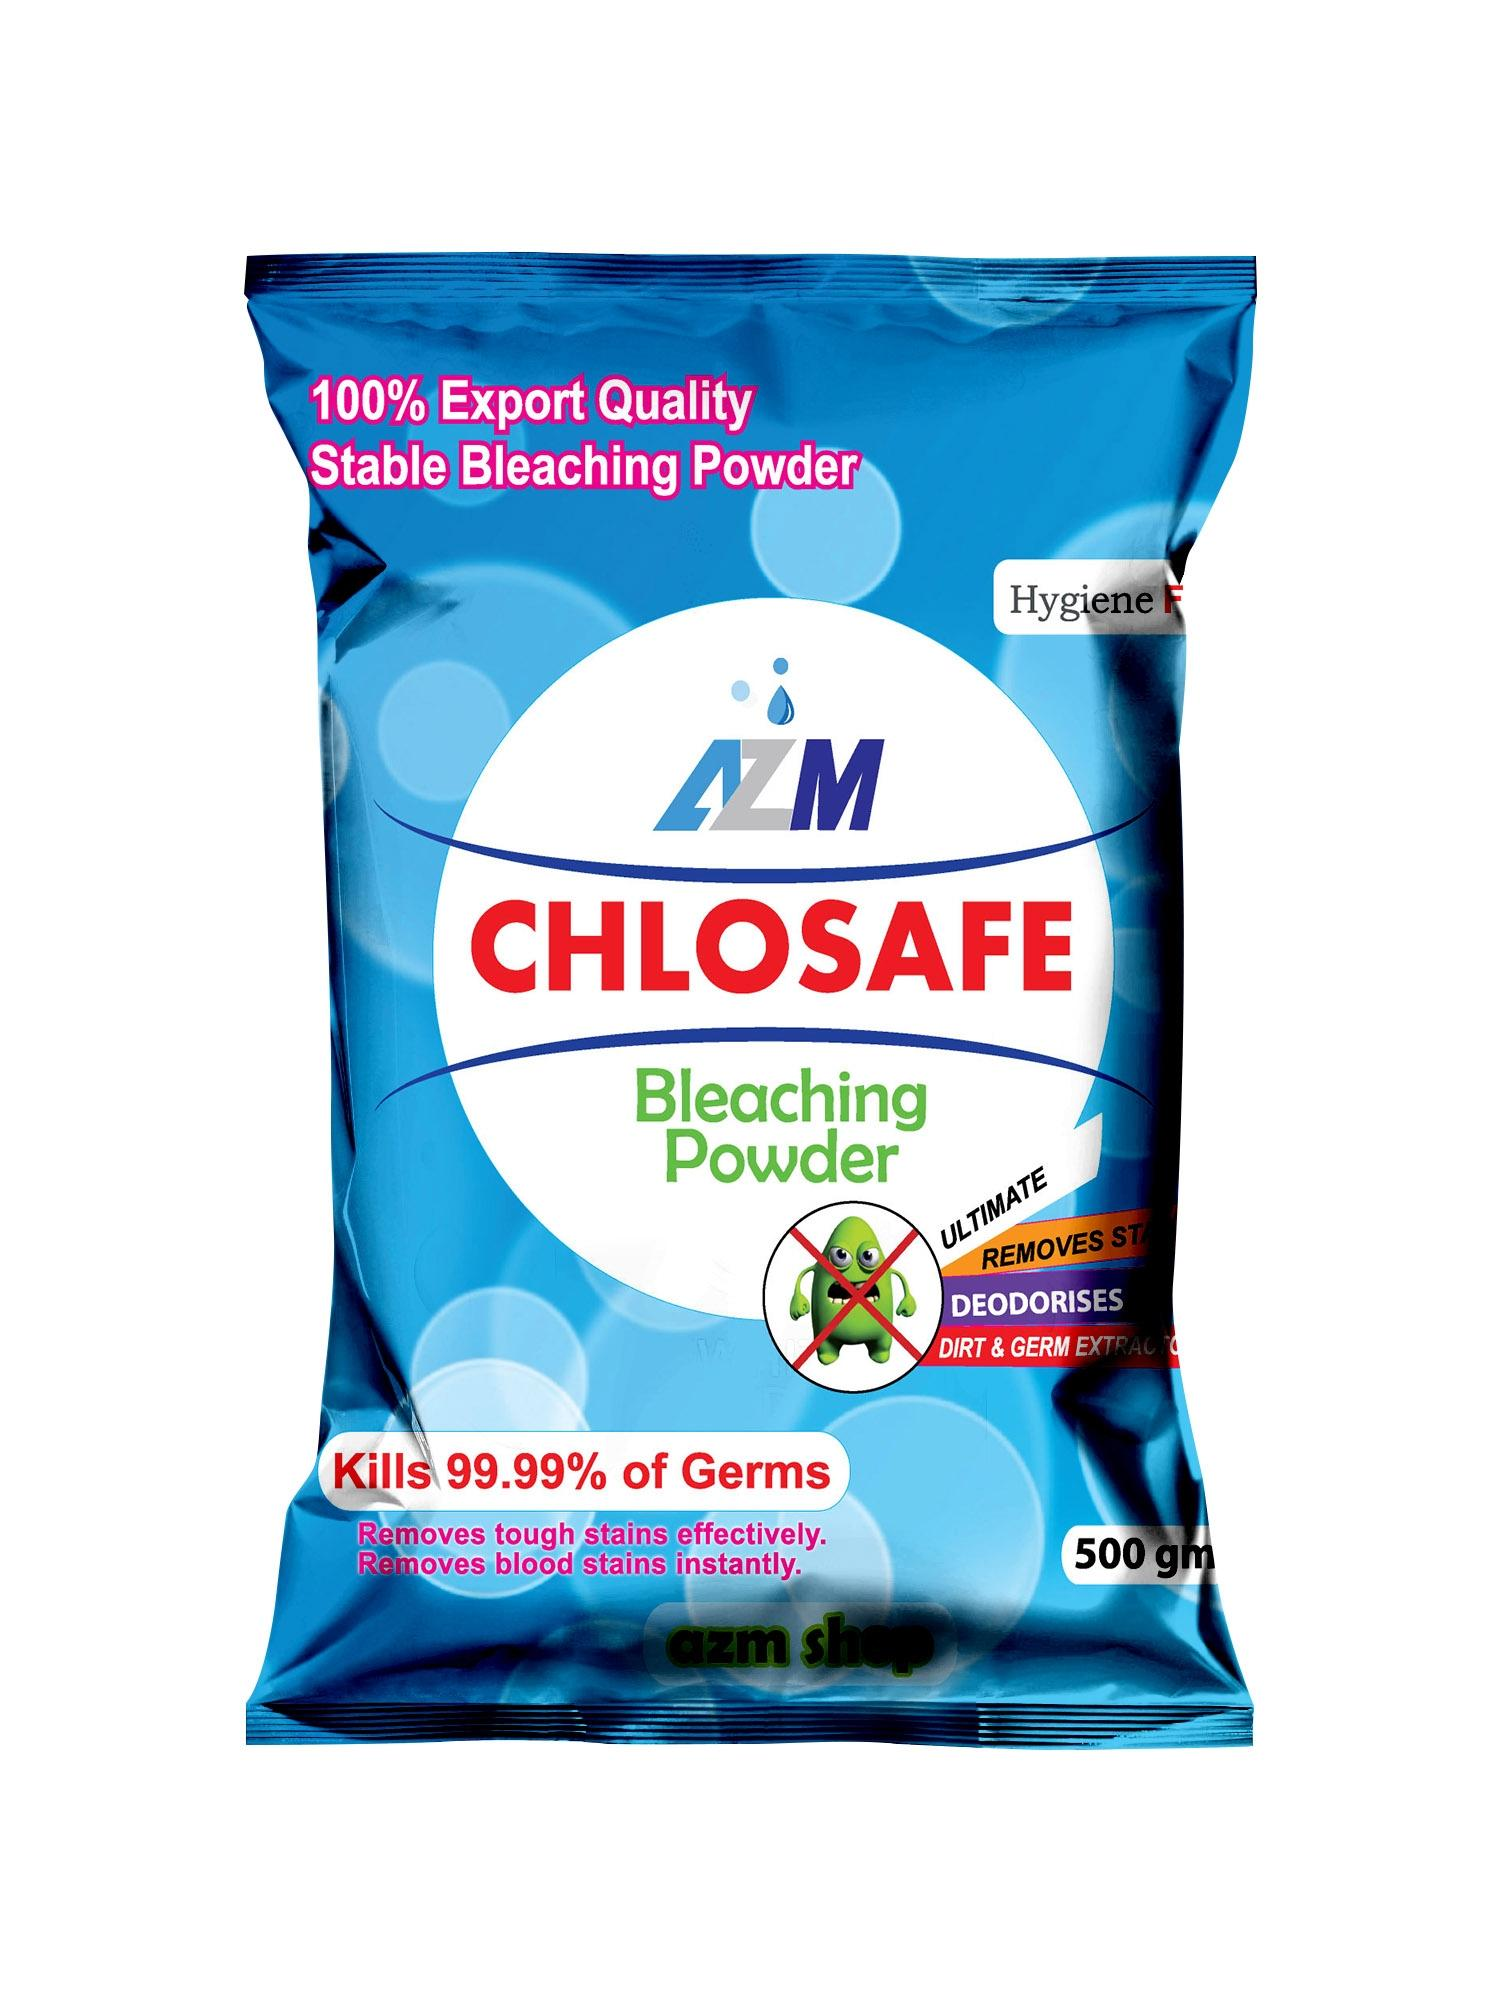 Chlosafe Stable Bleaching Powder Packet - 500 gm